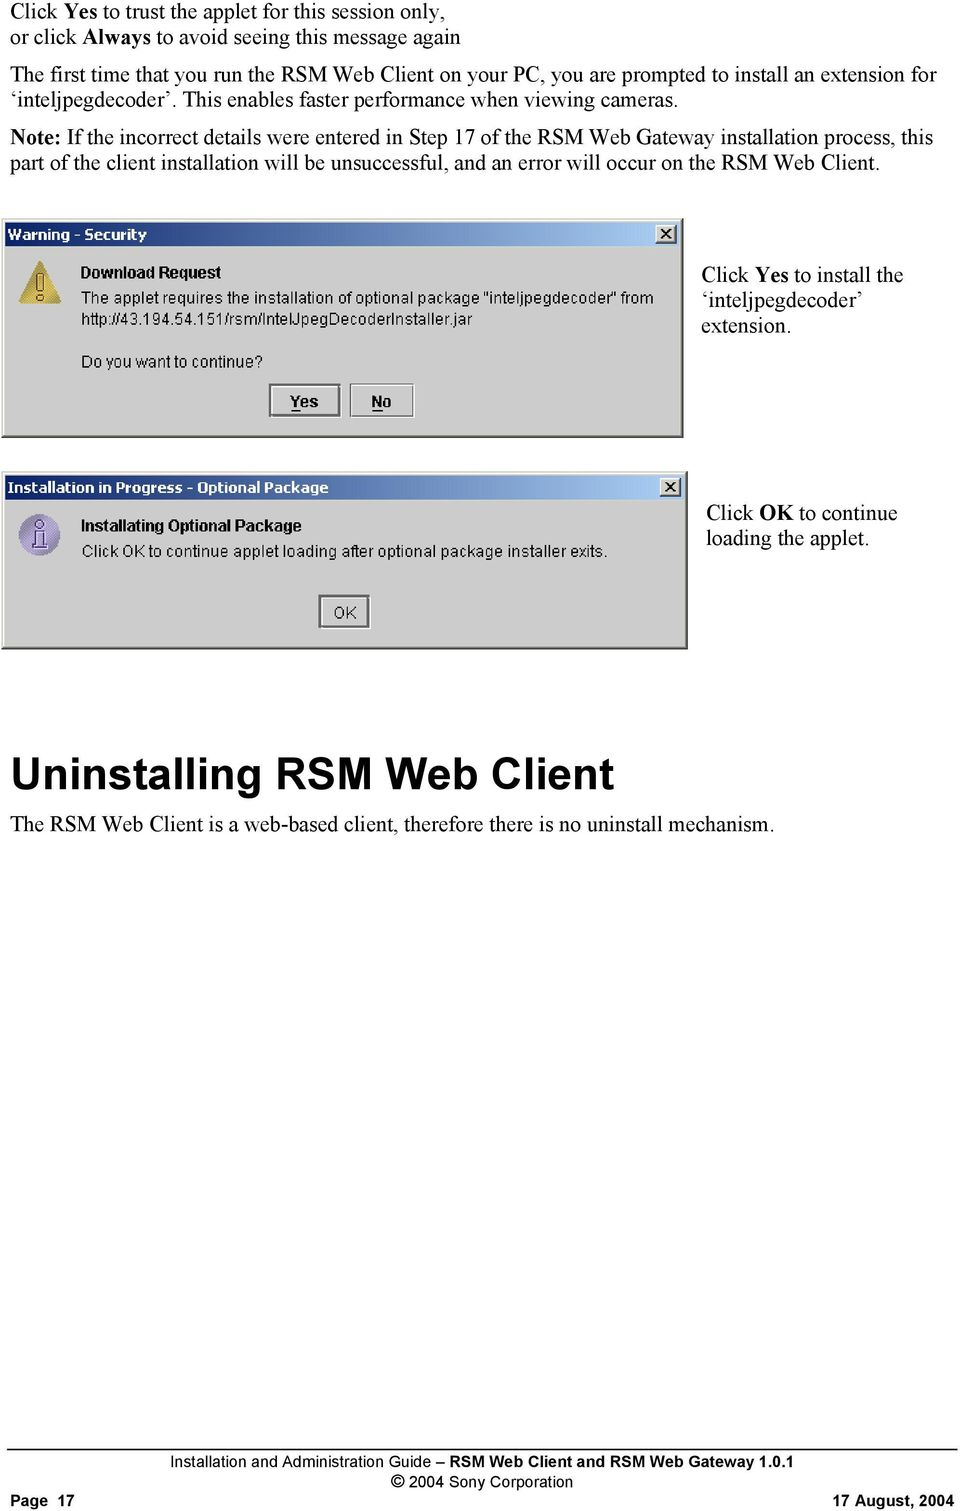 Note: If the incorrect details were entered in Step 17 of the RSM Web Gateway installation process, this part of the client installation will be unsuccessful, and an error will